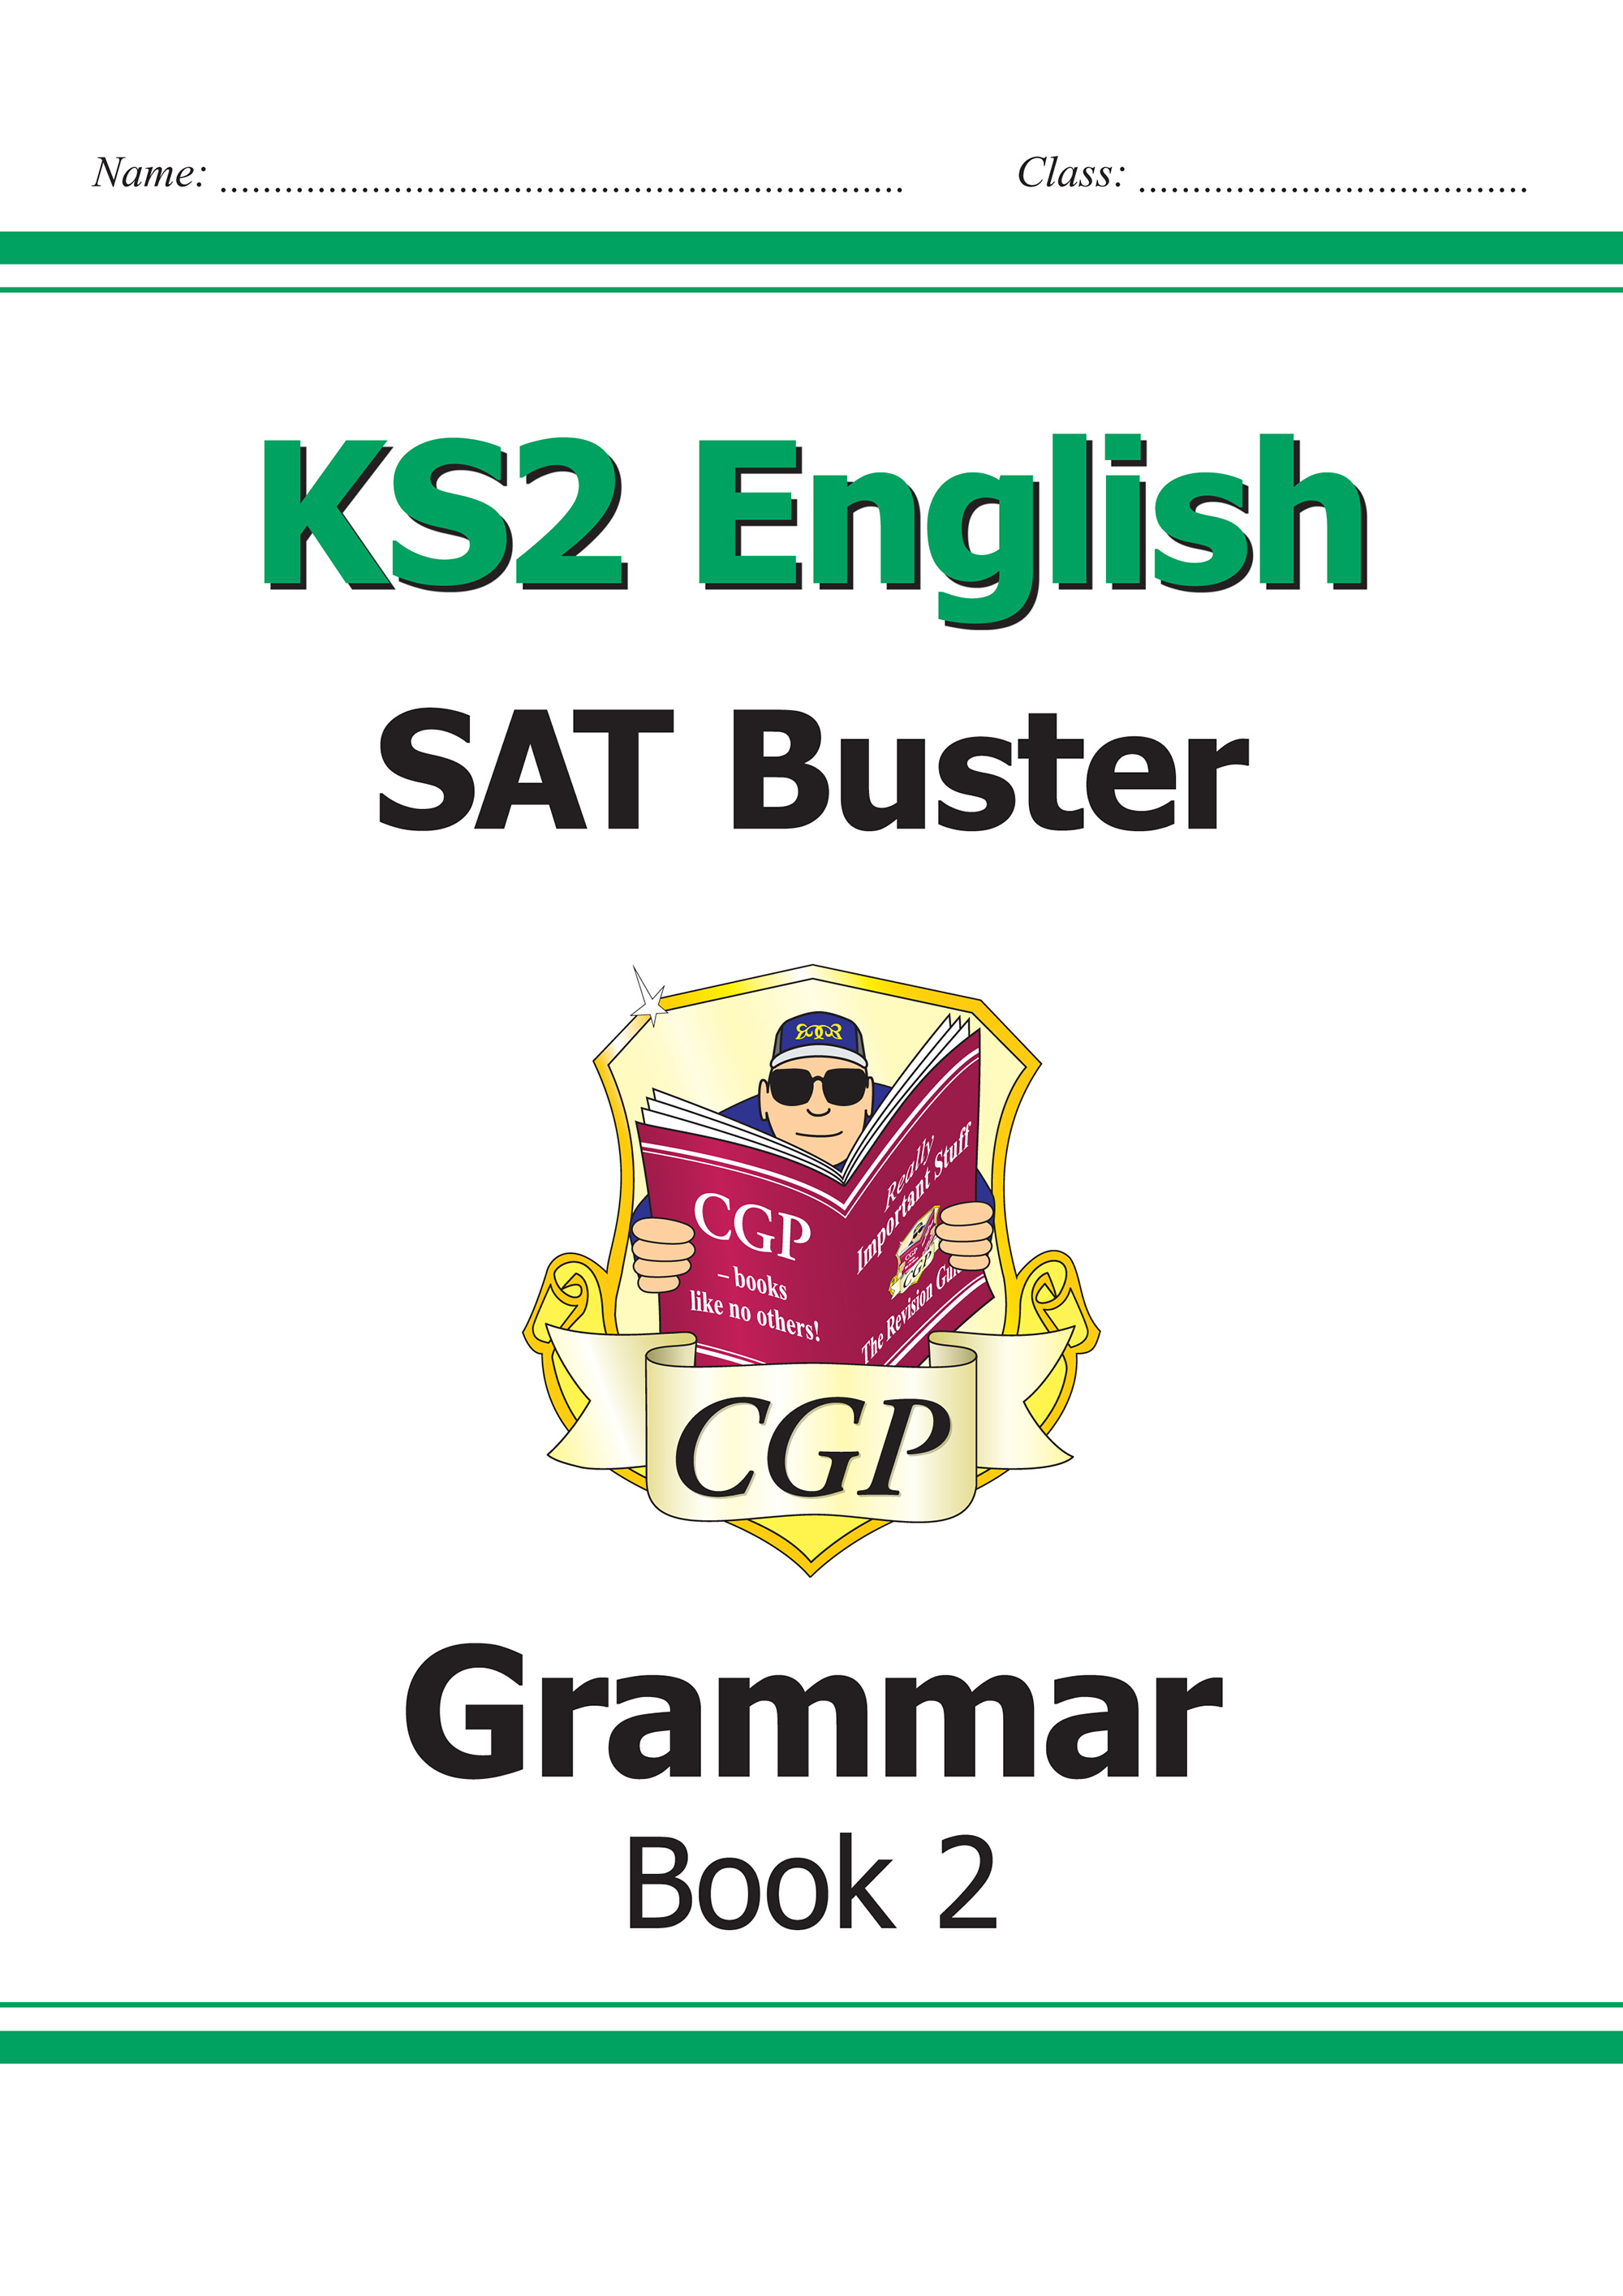 E6G222 - KS2 English SAT Buster - Grammar Book 2 (for the 2020 tests)